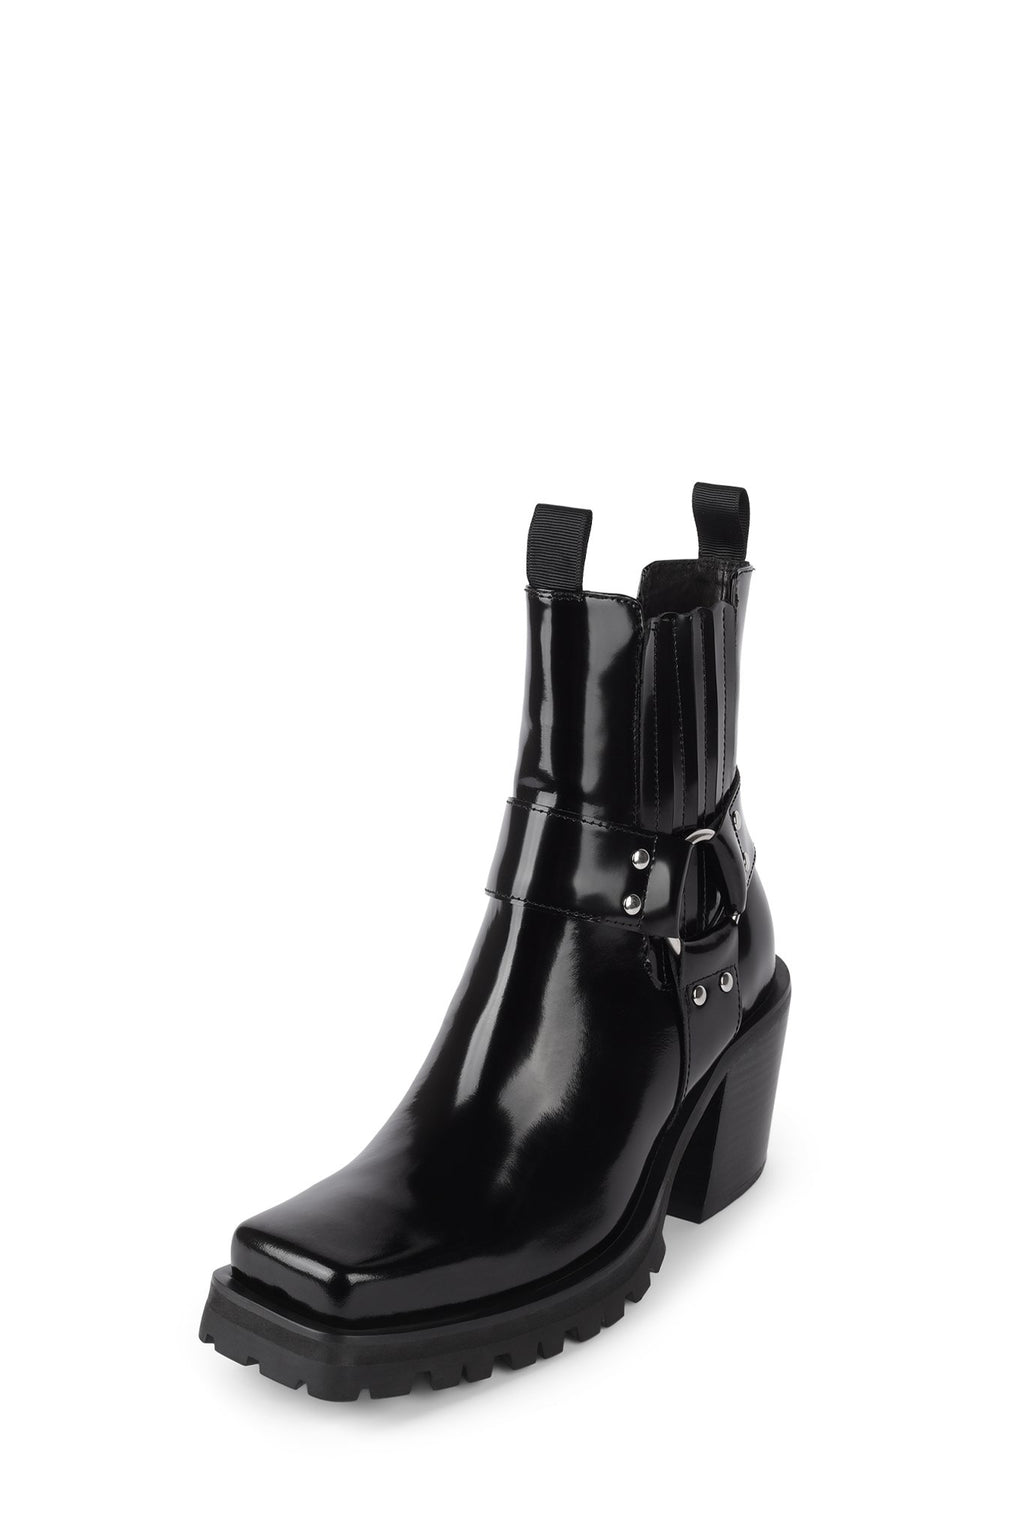 ELKINS-BK Heeled Boot Jeffrey Campbell